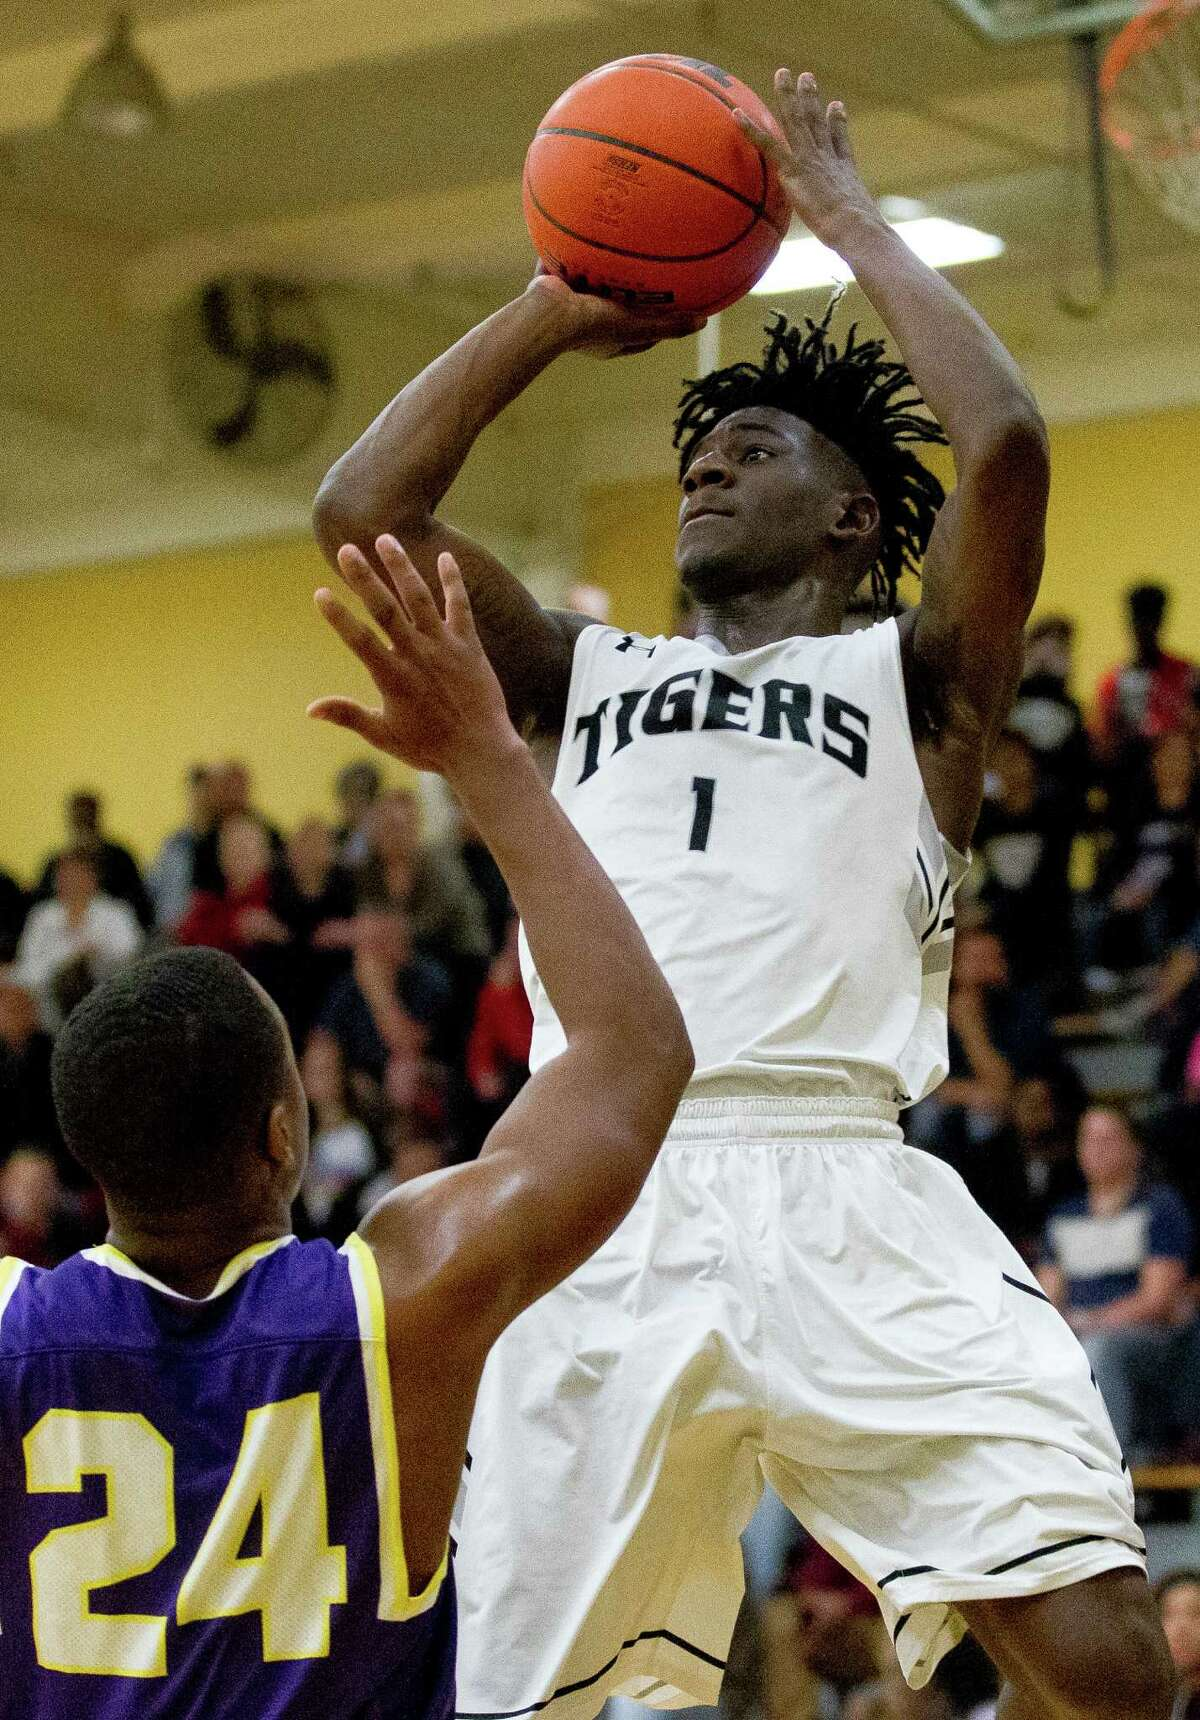 Conroe guard Jay Lewis (1) shoots over the Lufkin guard Jeremiah Davis (24) during the fourth quarter of a District 12-6A high school boys basketball game at Conroe High School Friday, Feb. 3, 2017, in Conroe. Conroe defeated Lufkin 68-62 in overtime.